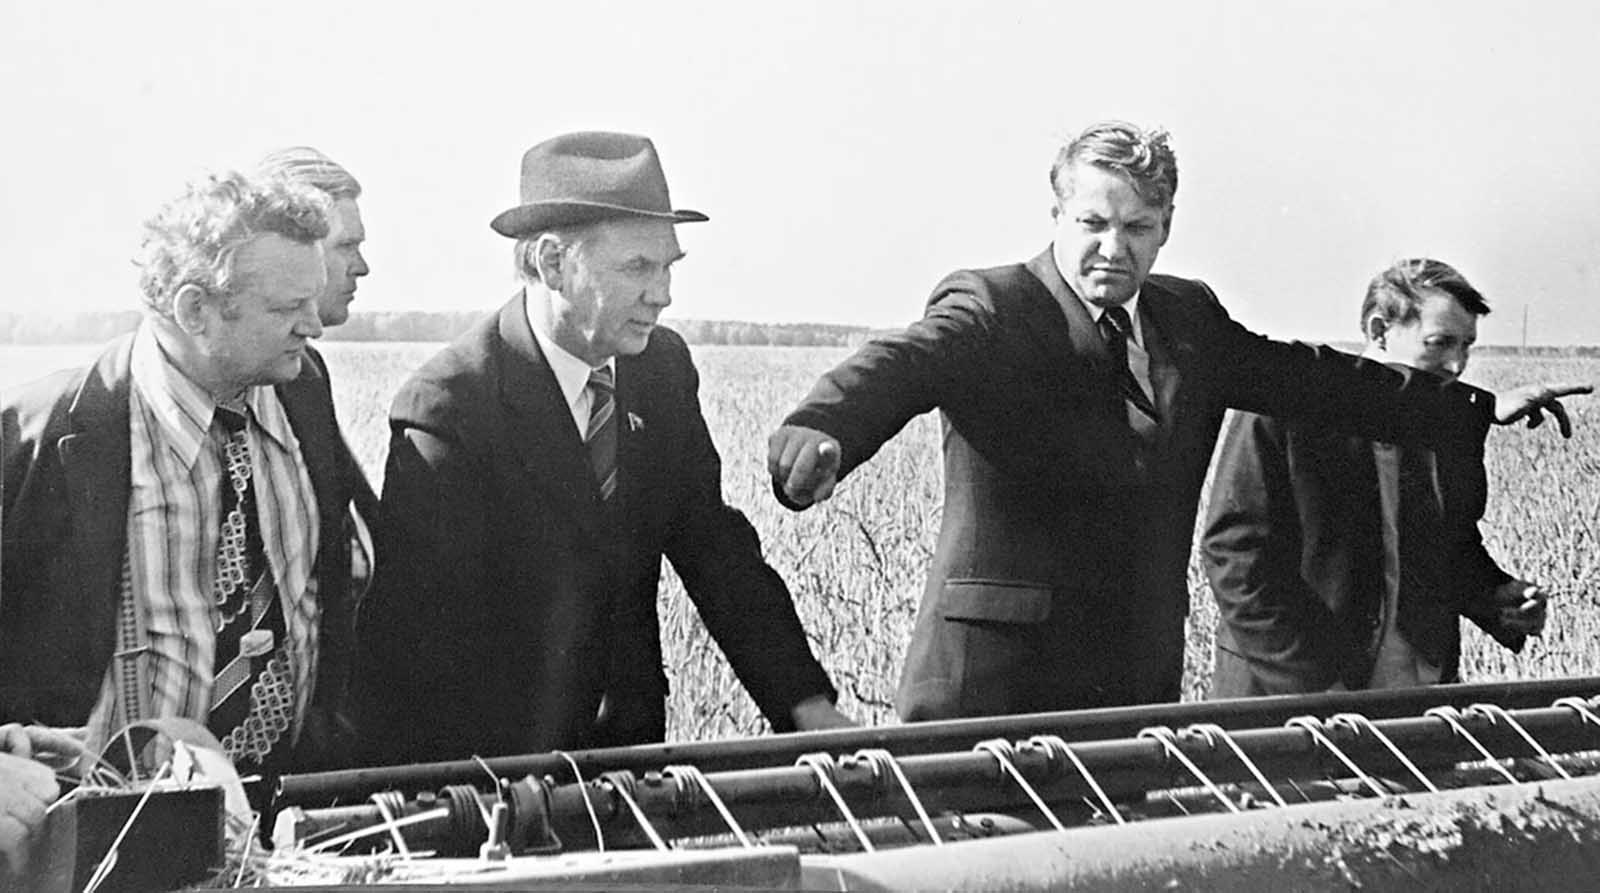 Yeltsin visiting a collective farm during the harvesting time. 1980s.